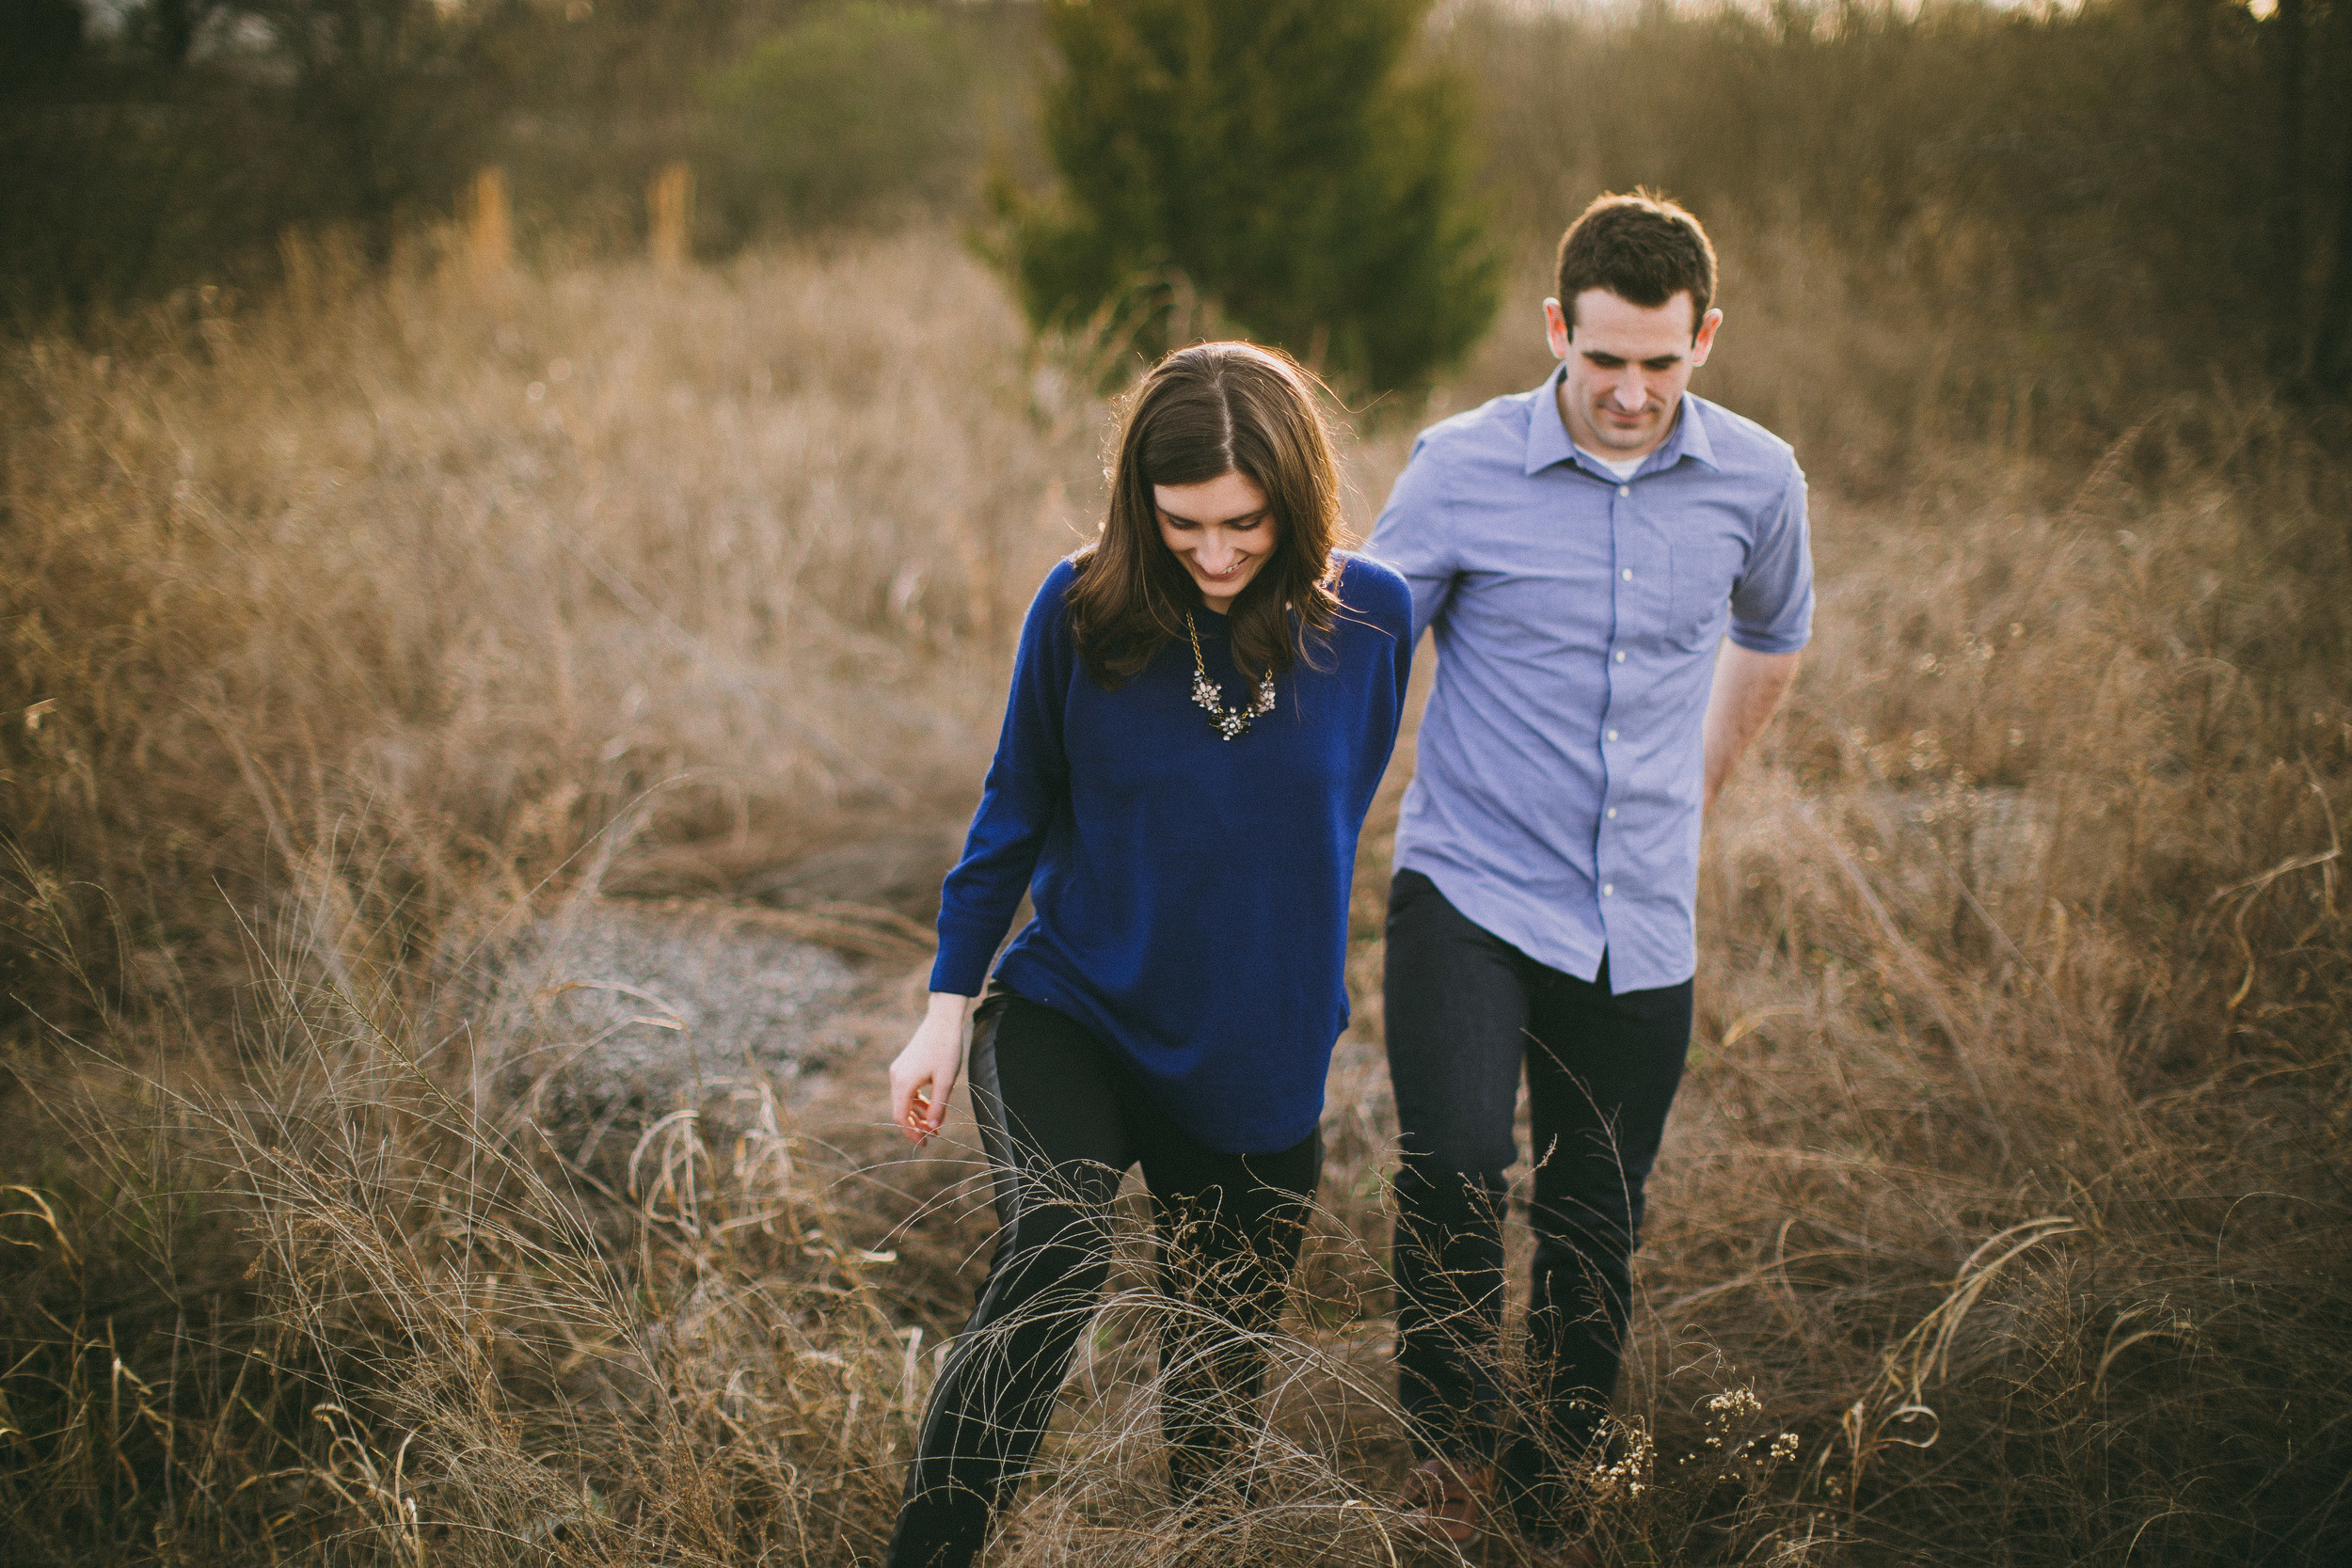 haliejohnsonphotography-bowers-engagement-7.jpg